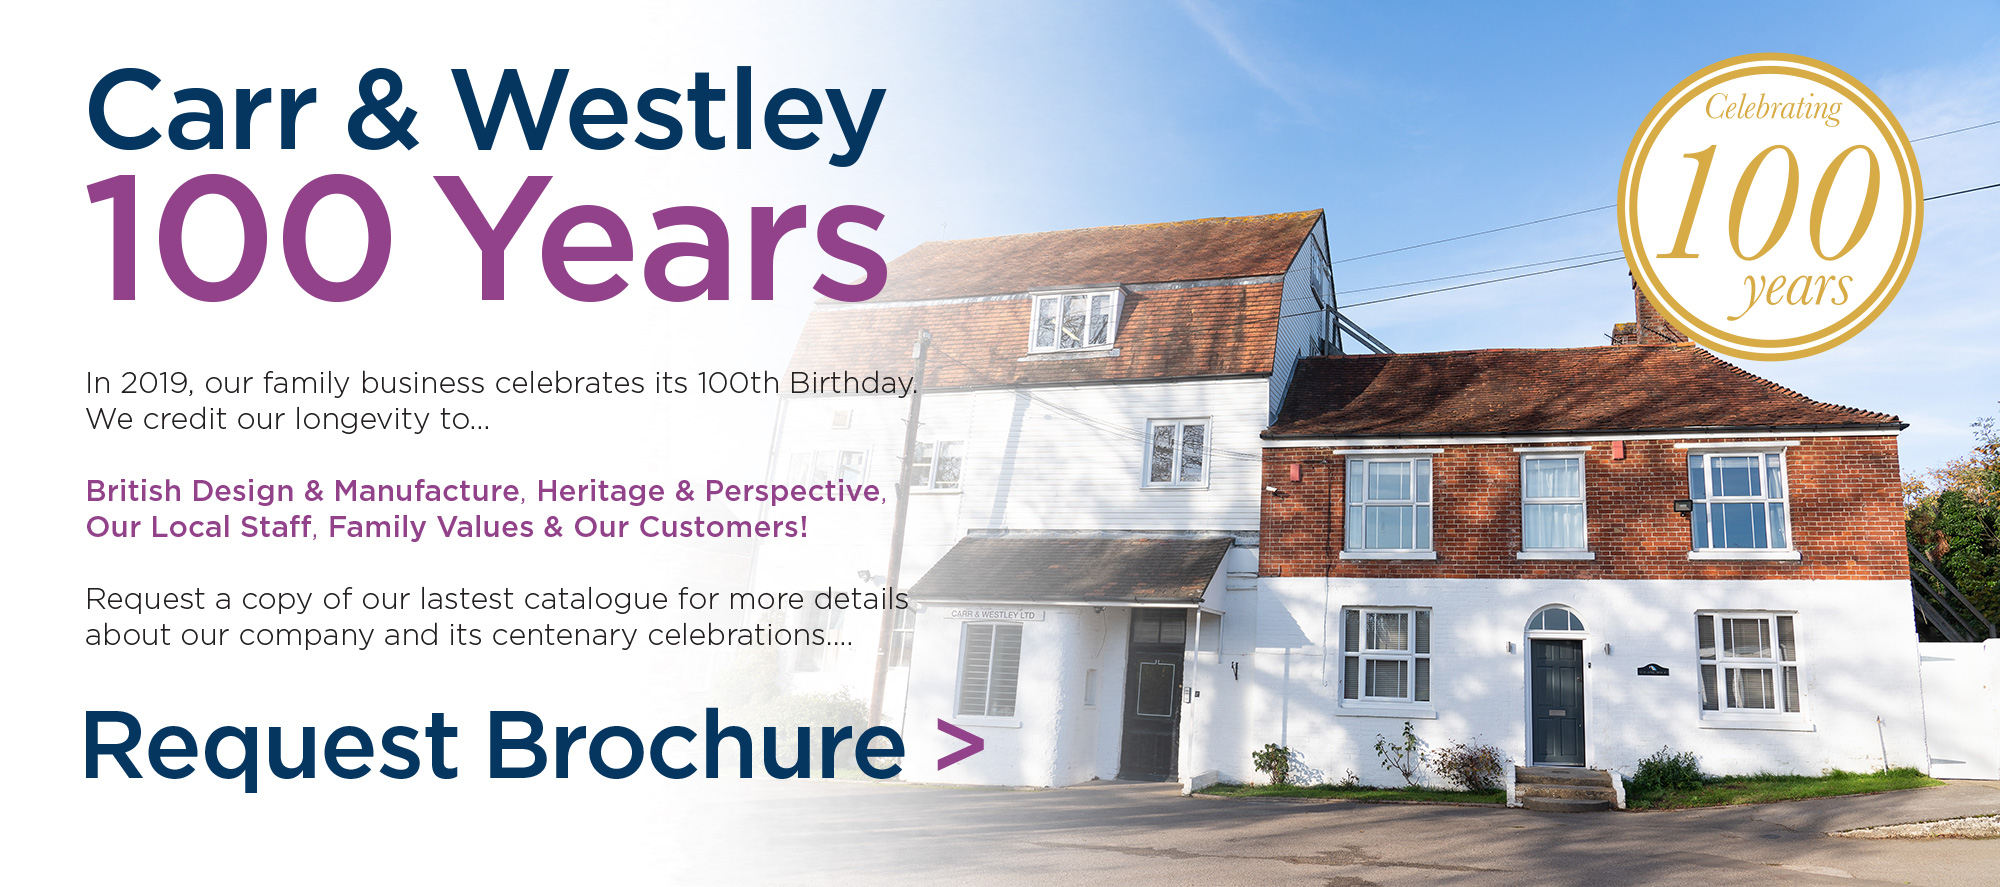 Carr & Westley - 100 Years